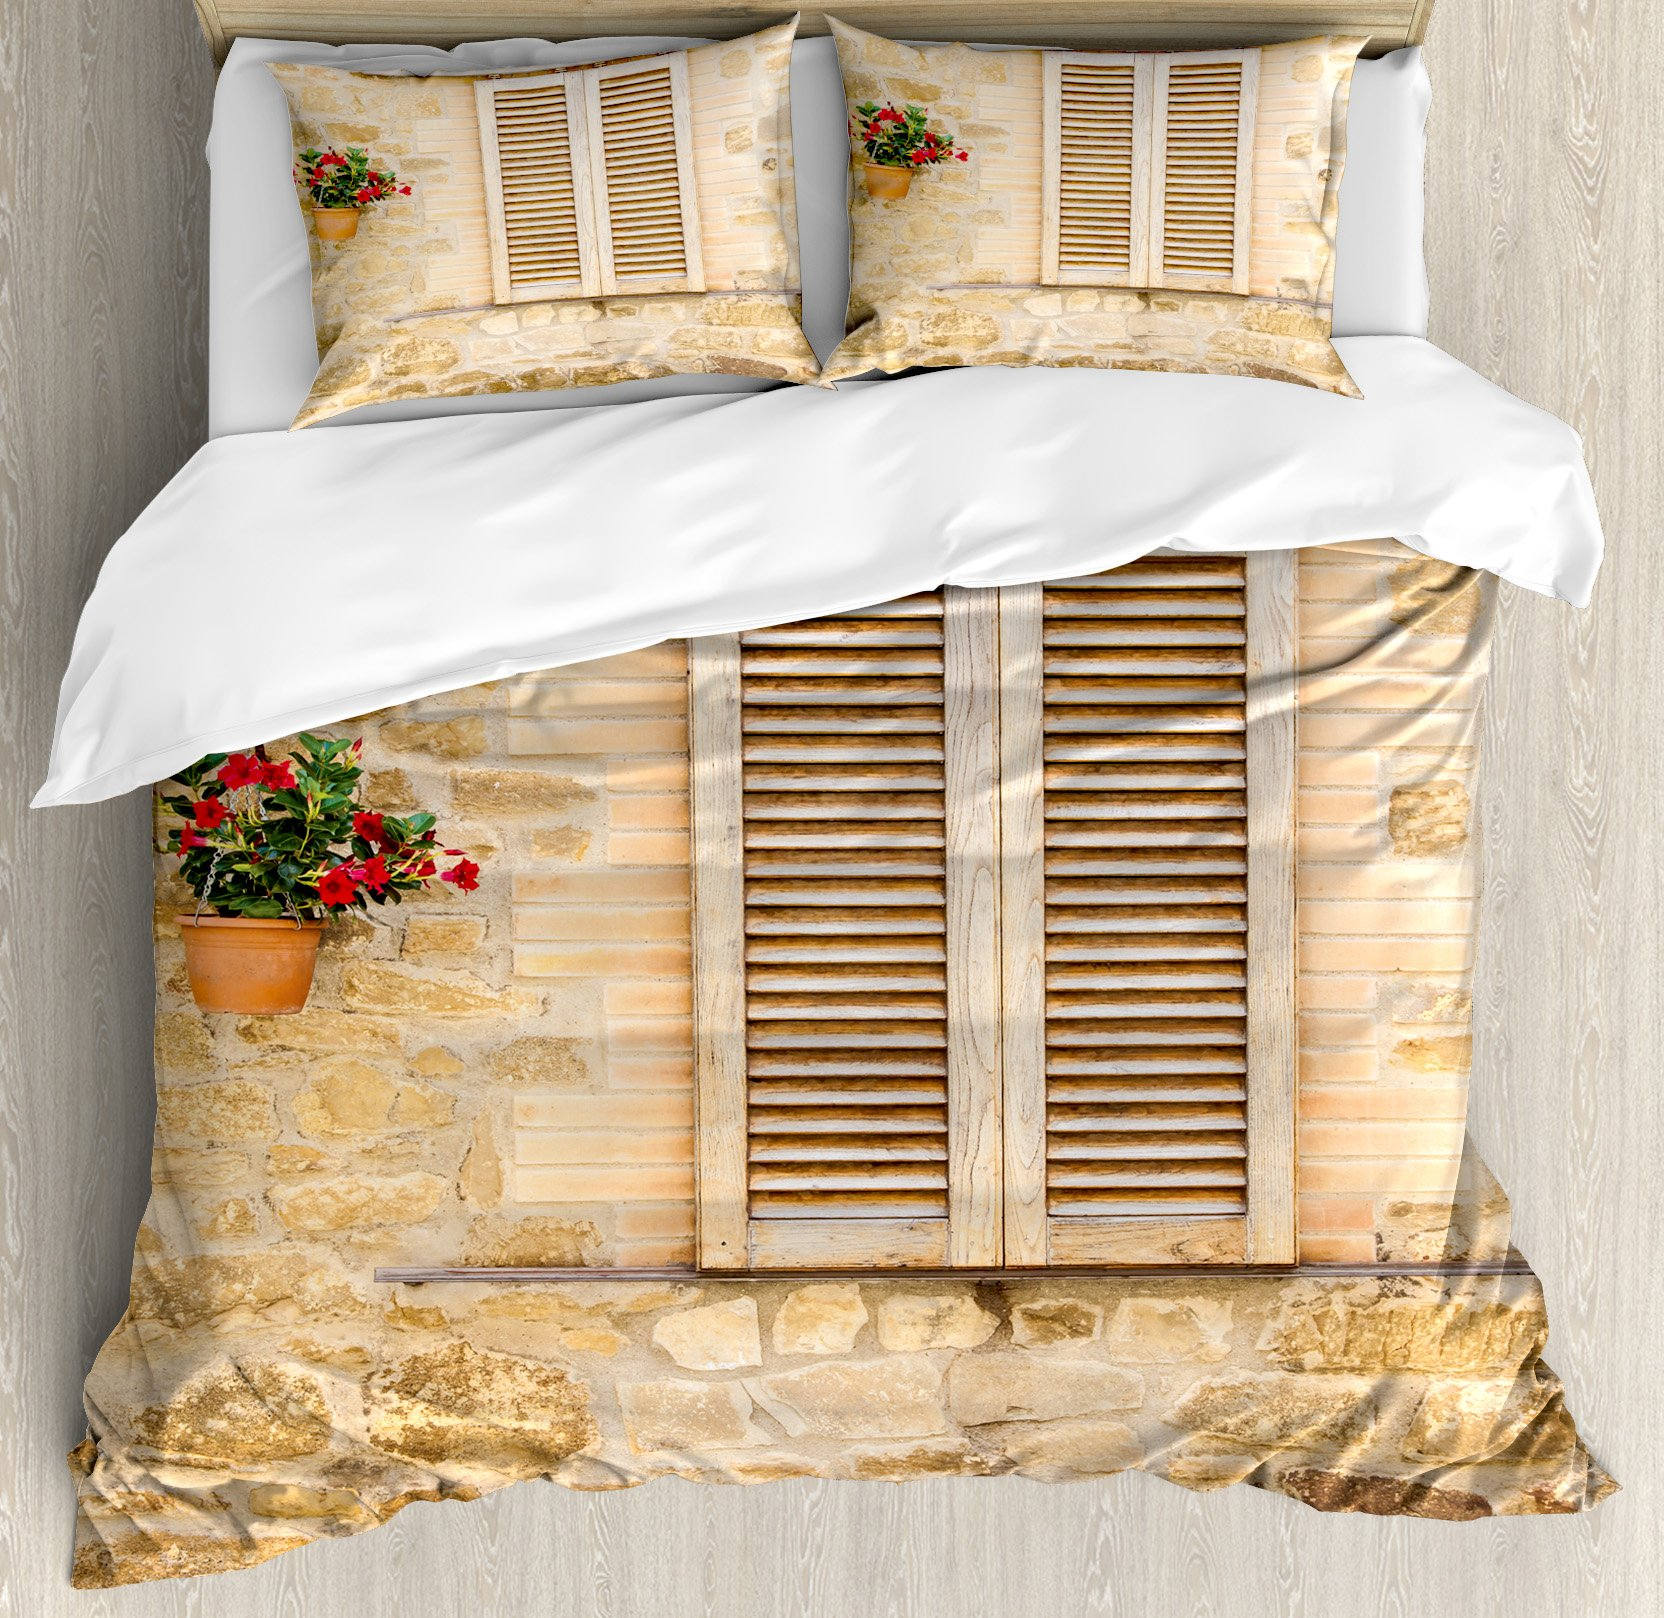 Tuscan Duvet Cover Set King Size by Ambesonne, Rustic Stone House and Window Shutters Flower Pot on Wall Italian Country Home Theme, Decorative 3 Piece Bedding Set with 2 Pillow Shams, Beige